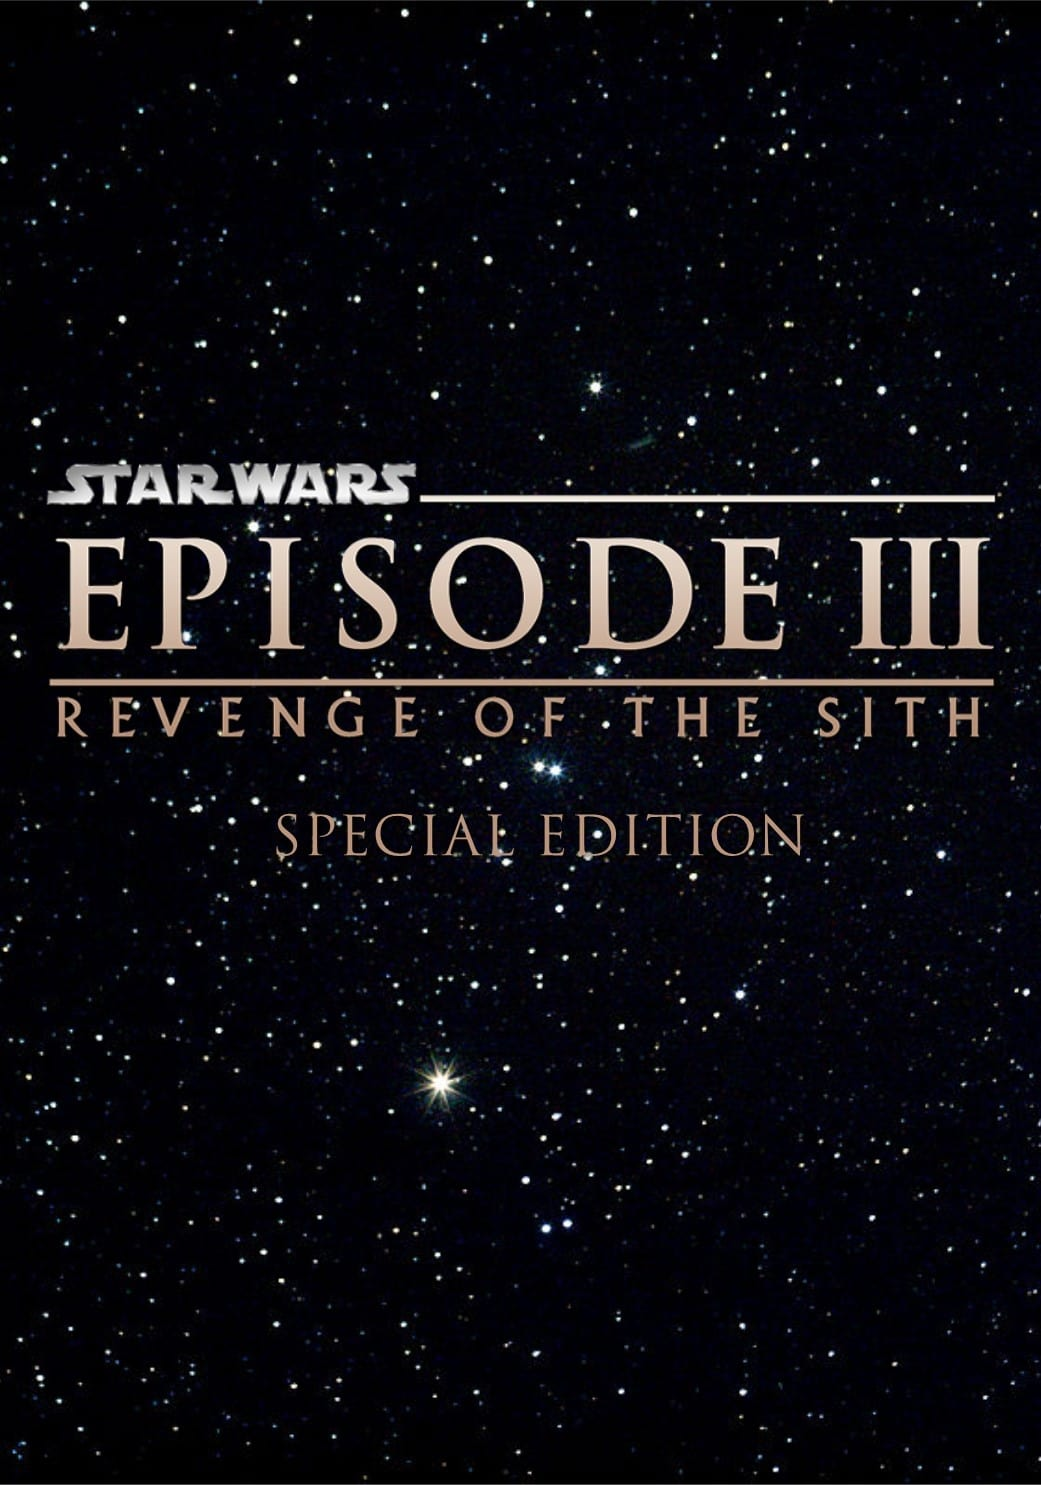 Star Wars Episode III: Revenge of the Sith Special Edition (2017)